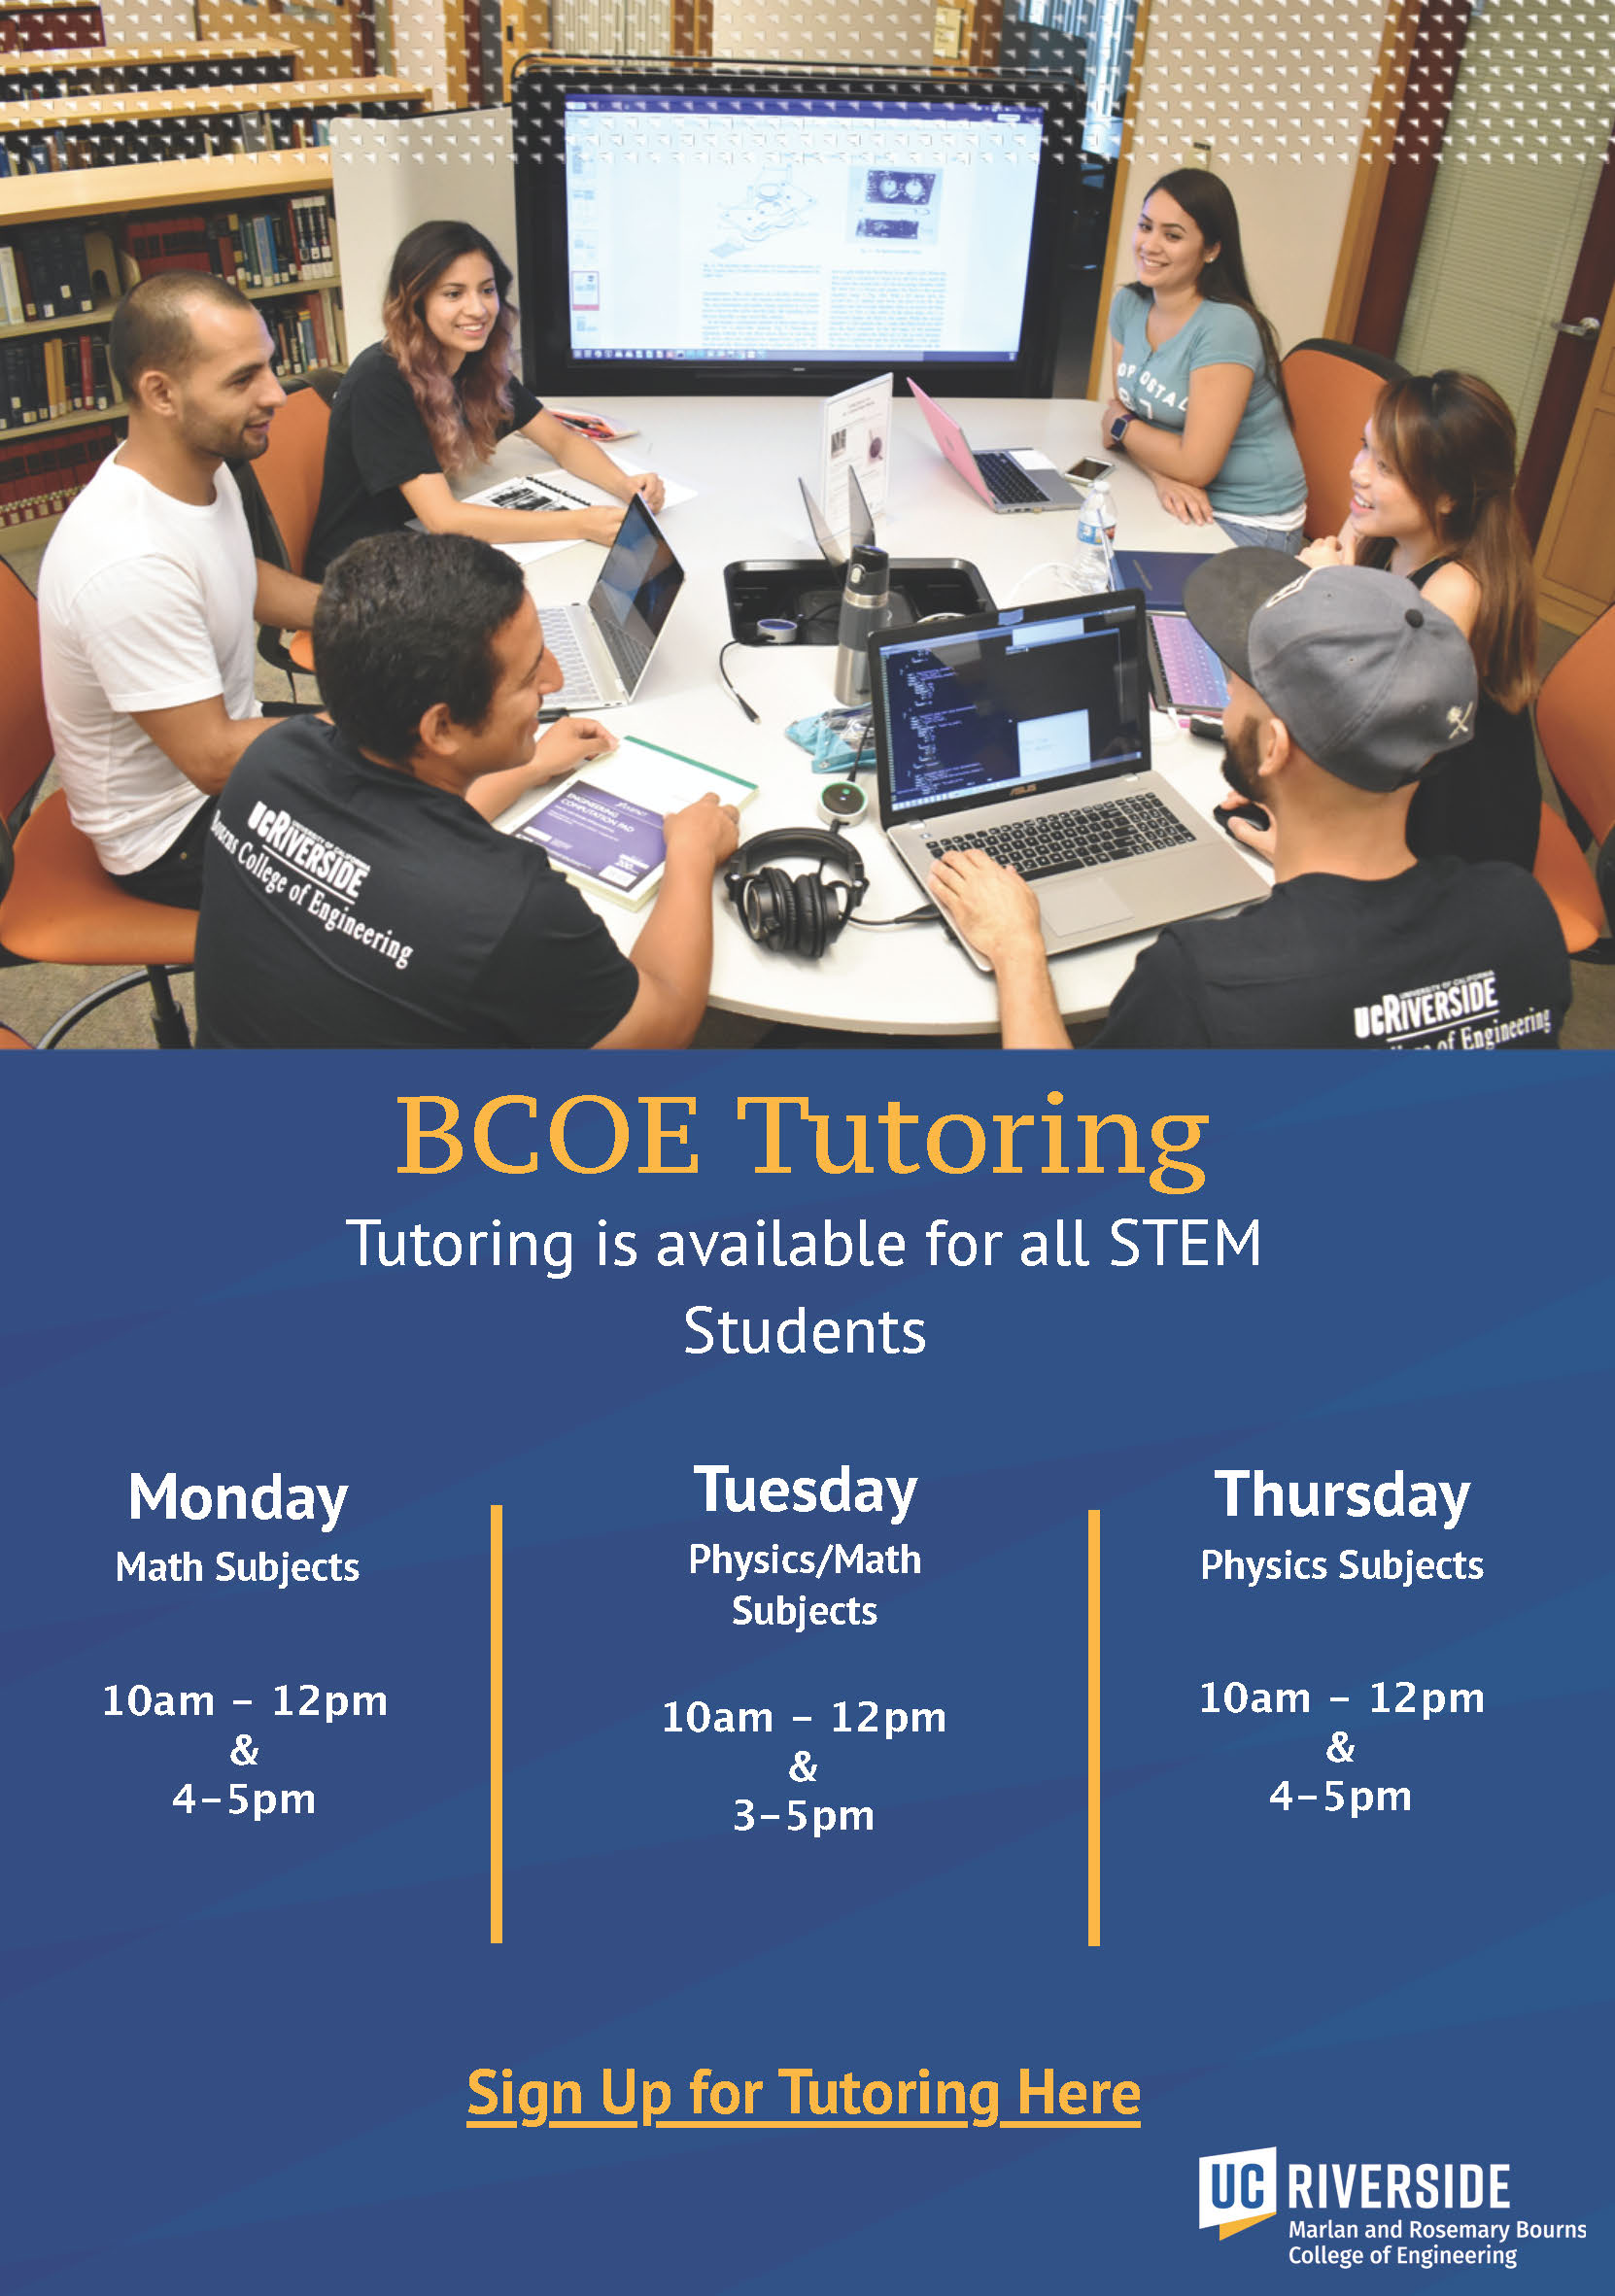 UCR BCOE Tutoring flyer fall 2020.jpg